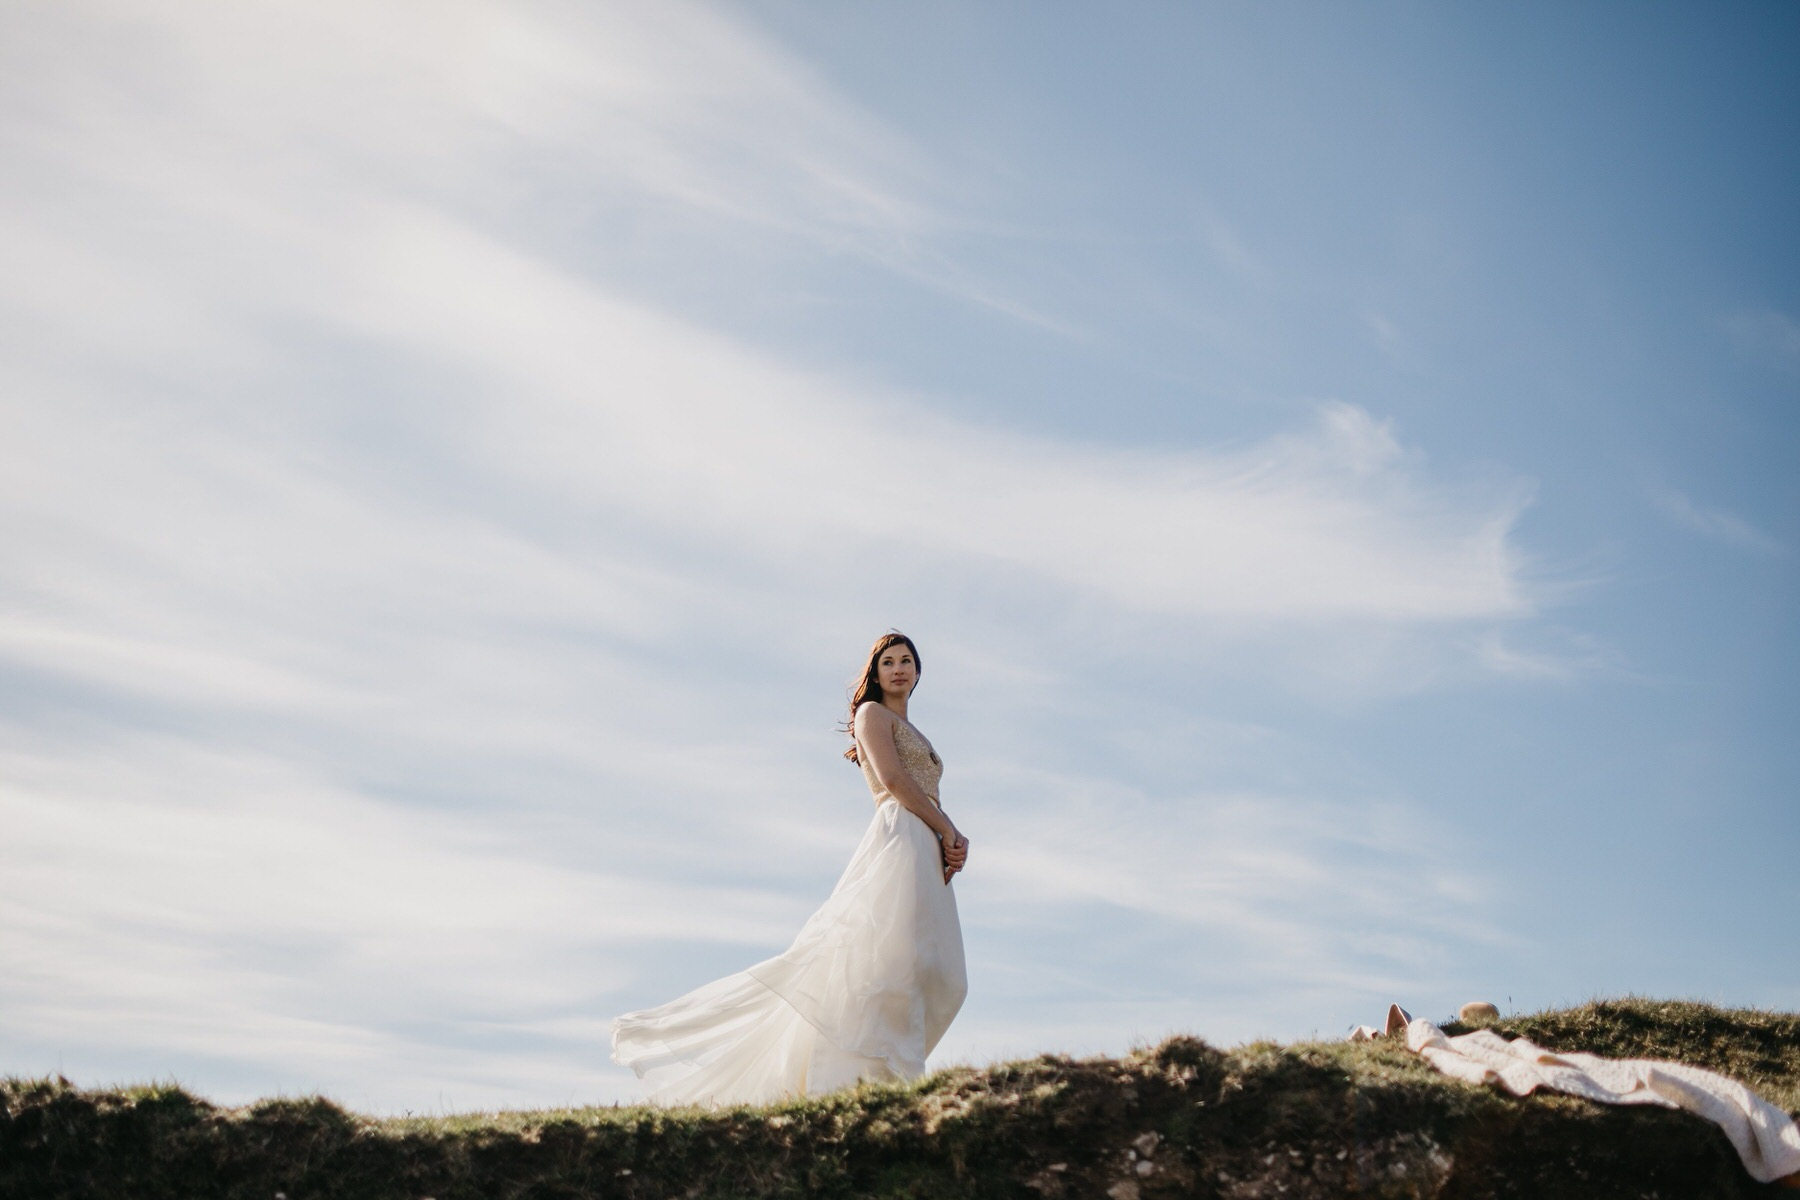 Bride at the top of a hill